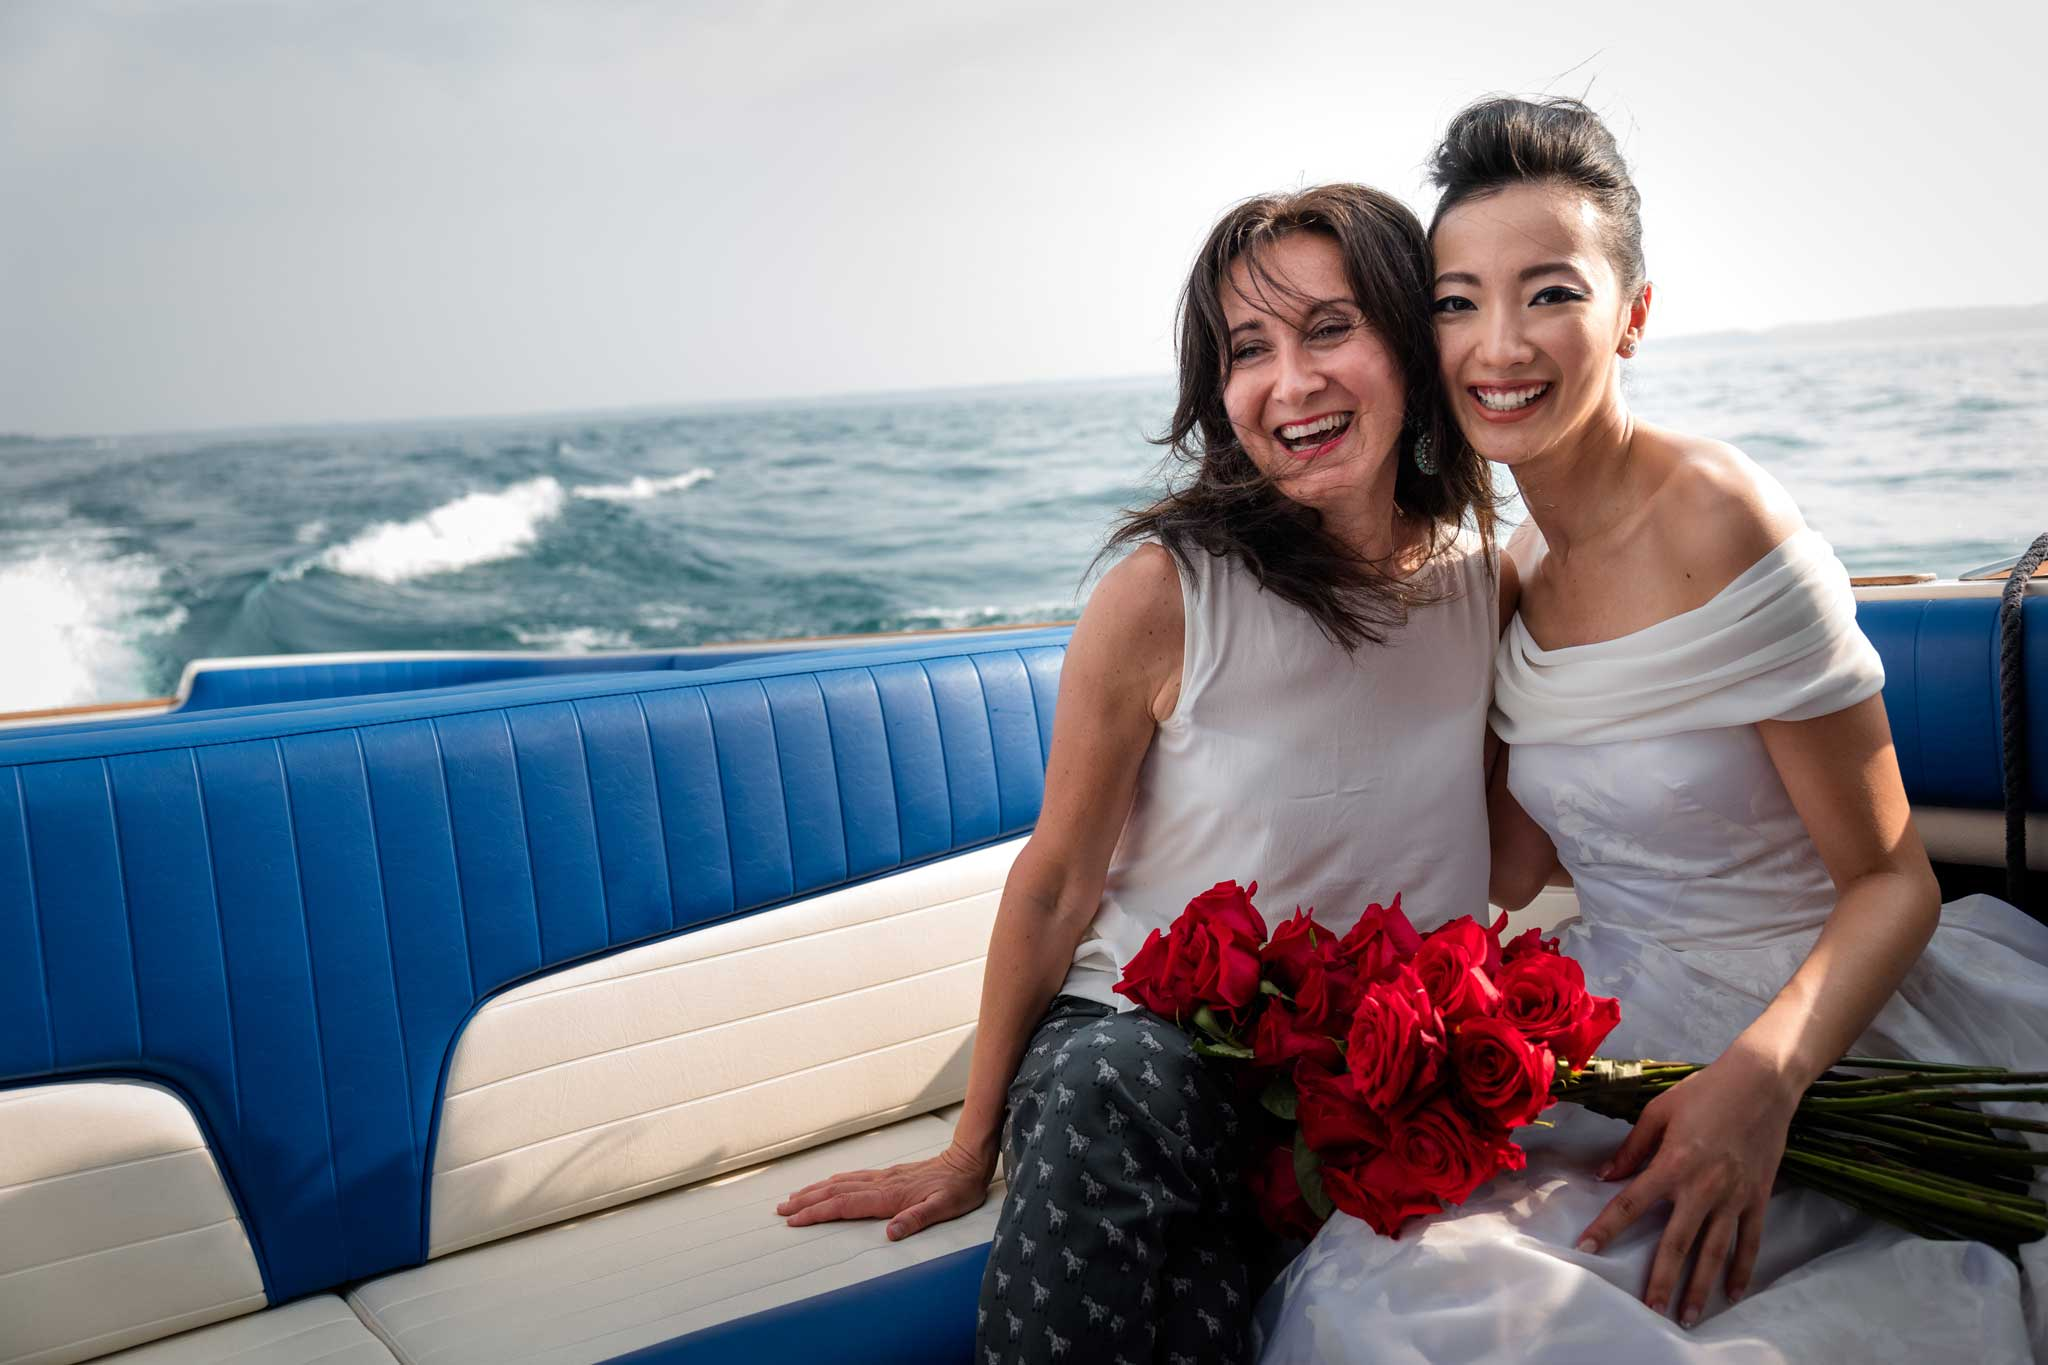 INSIGHTS FROM THE VENICE WEDDING PLANNER ALESSIA SANTA